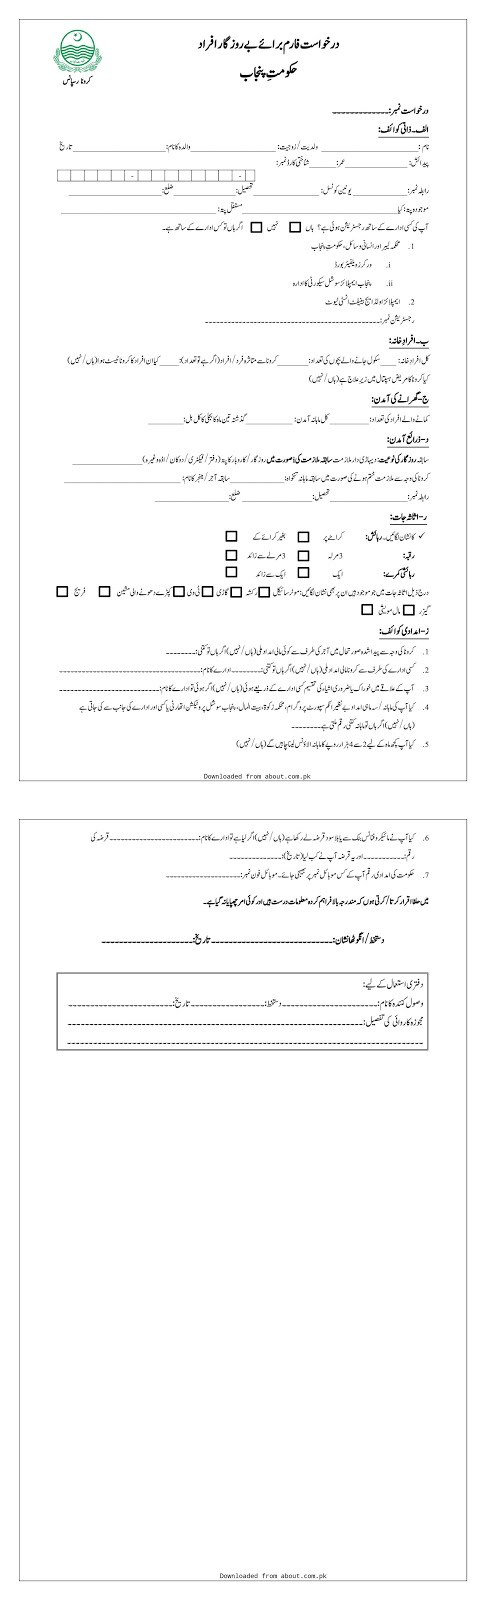 PM Corona Relief Fund Application Form